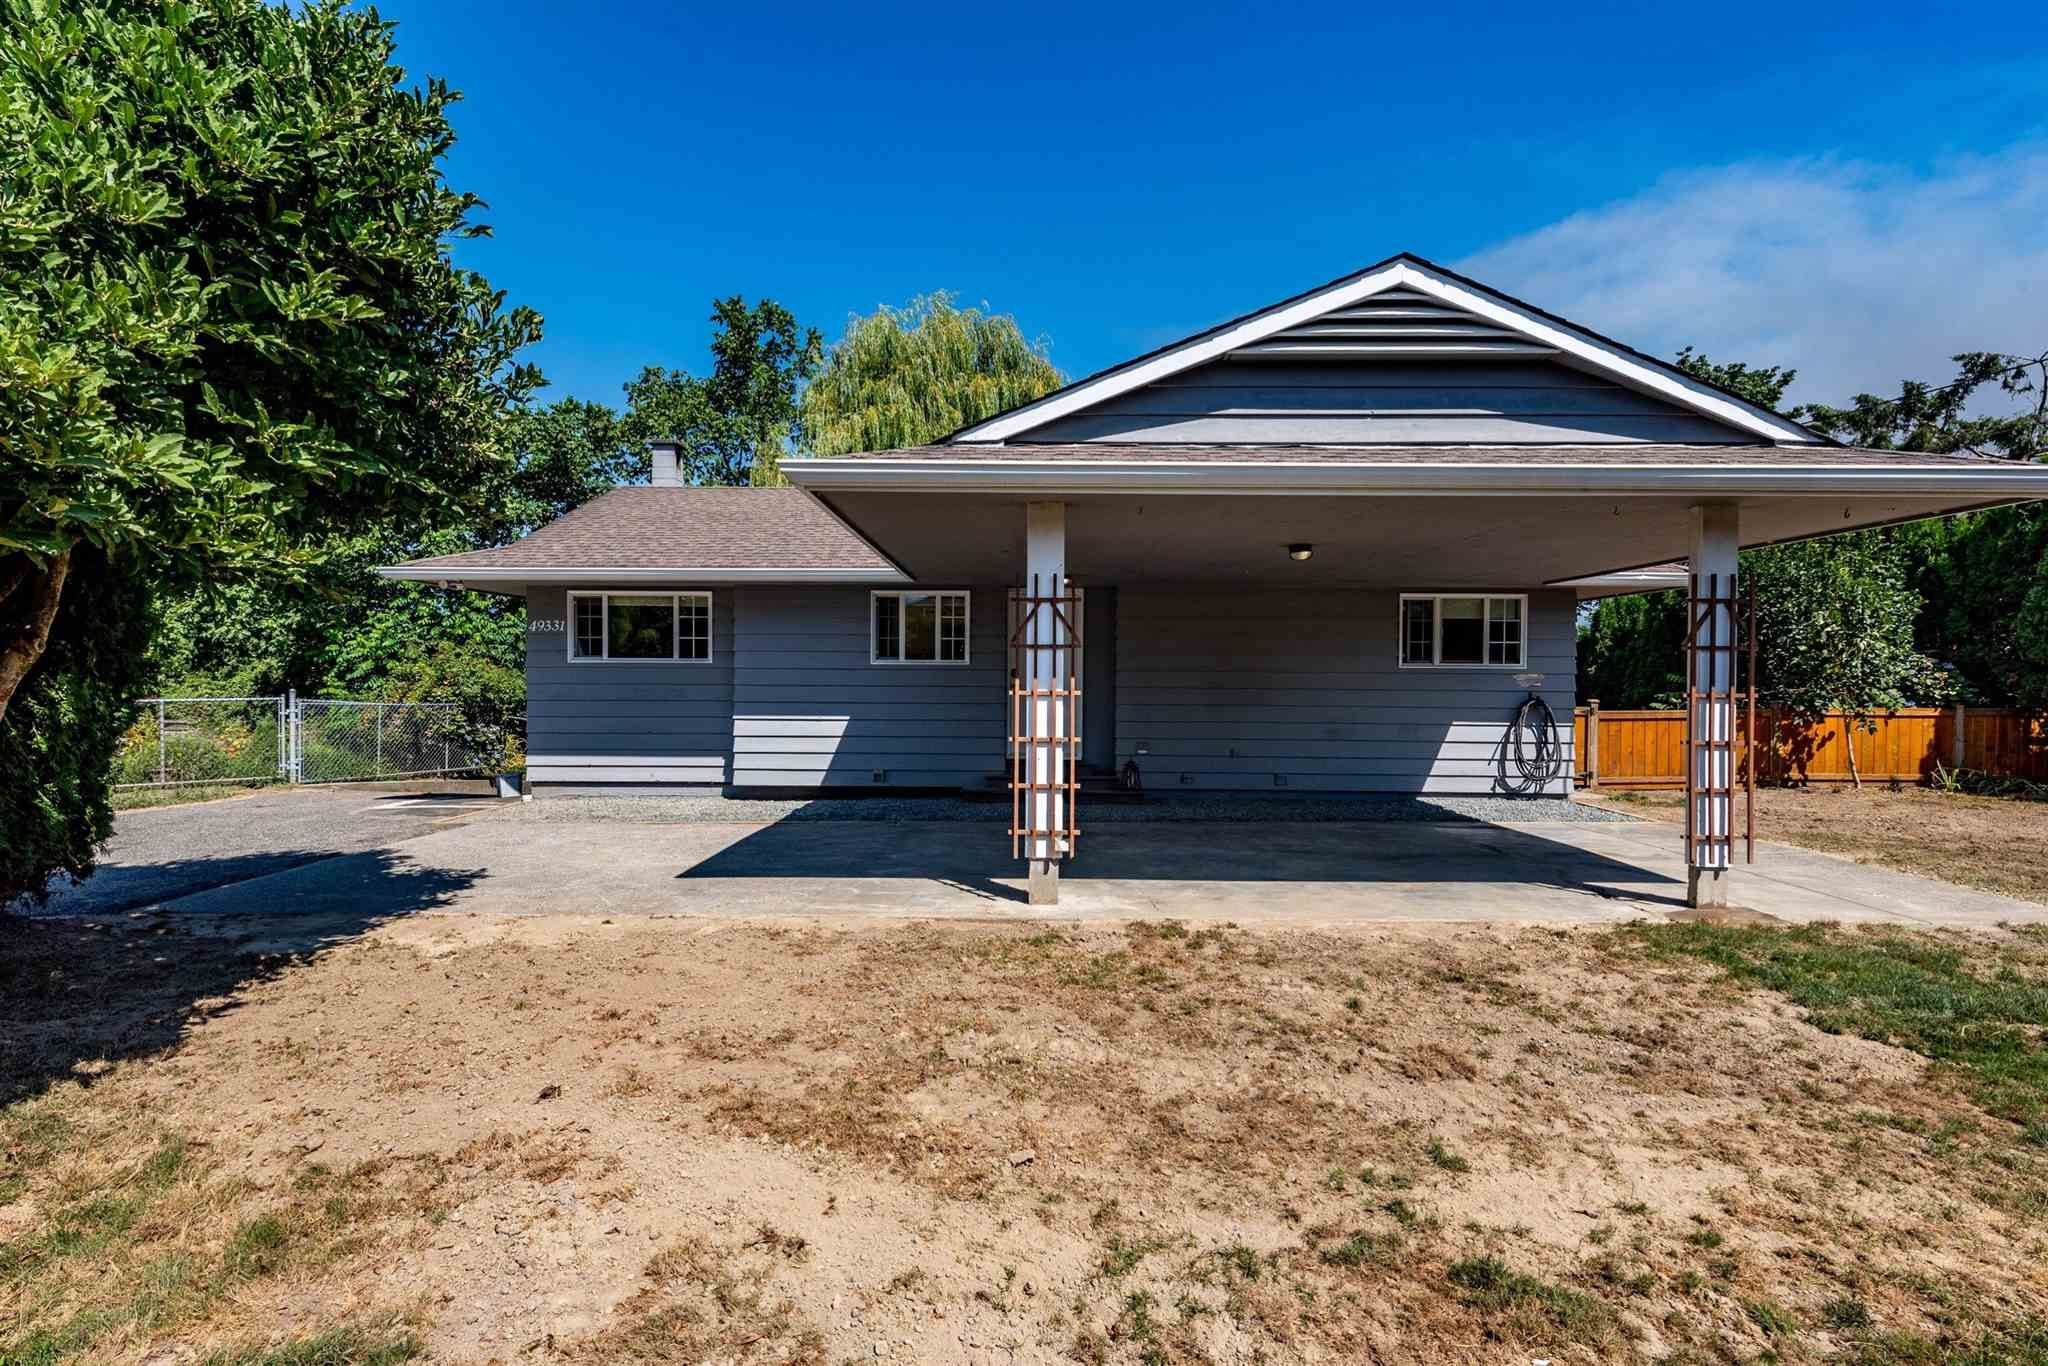 Main Photo: 49331 YALE Road in Chilliwack: East Chilliwack House for sale : MLS®# R2605420